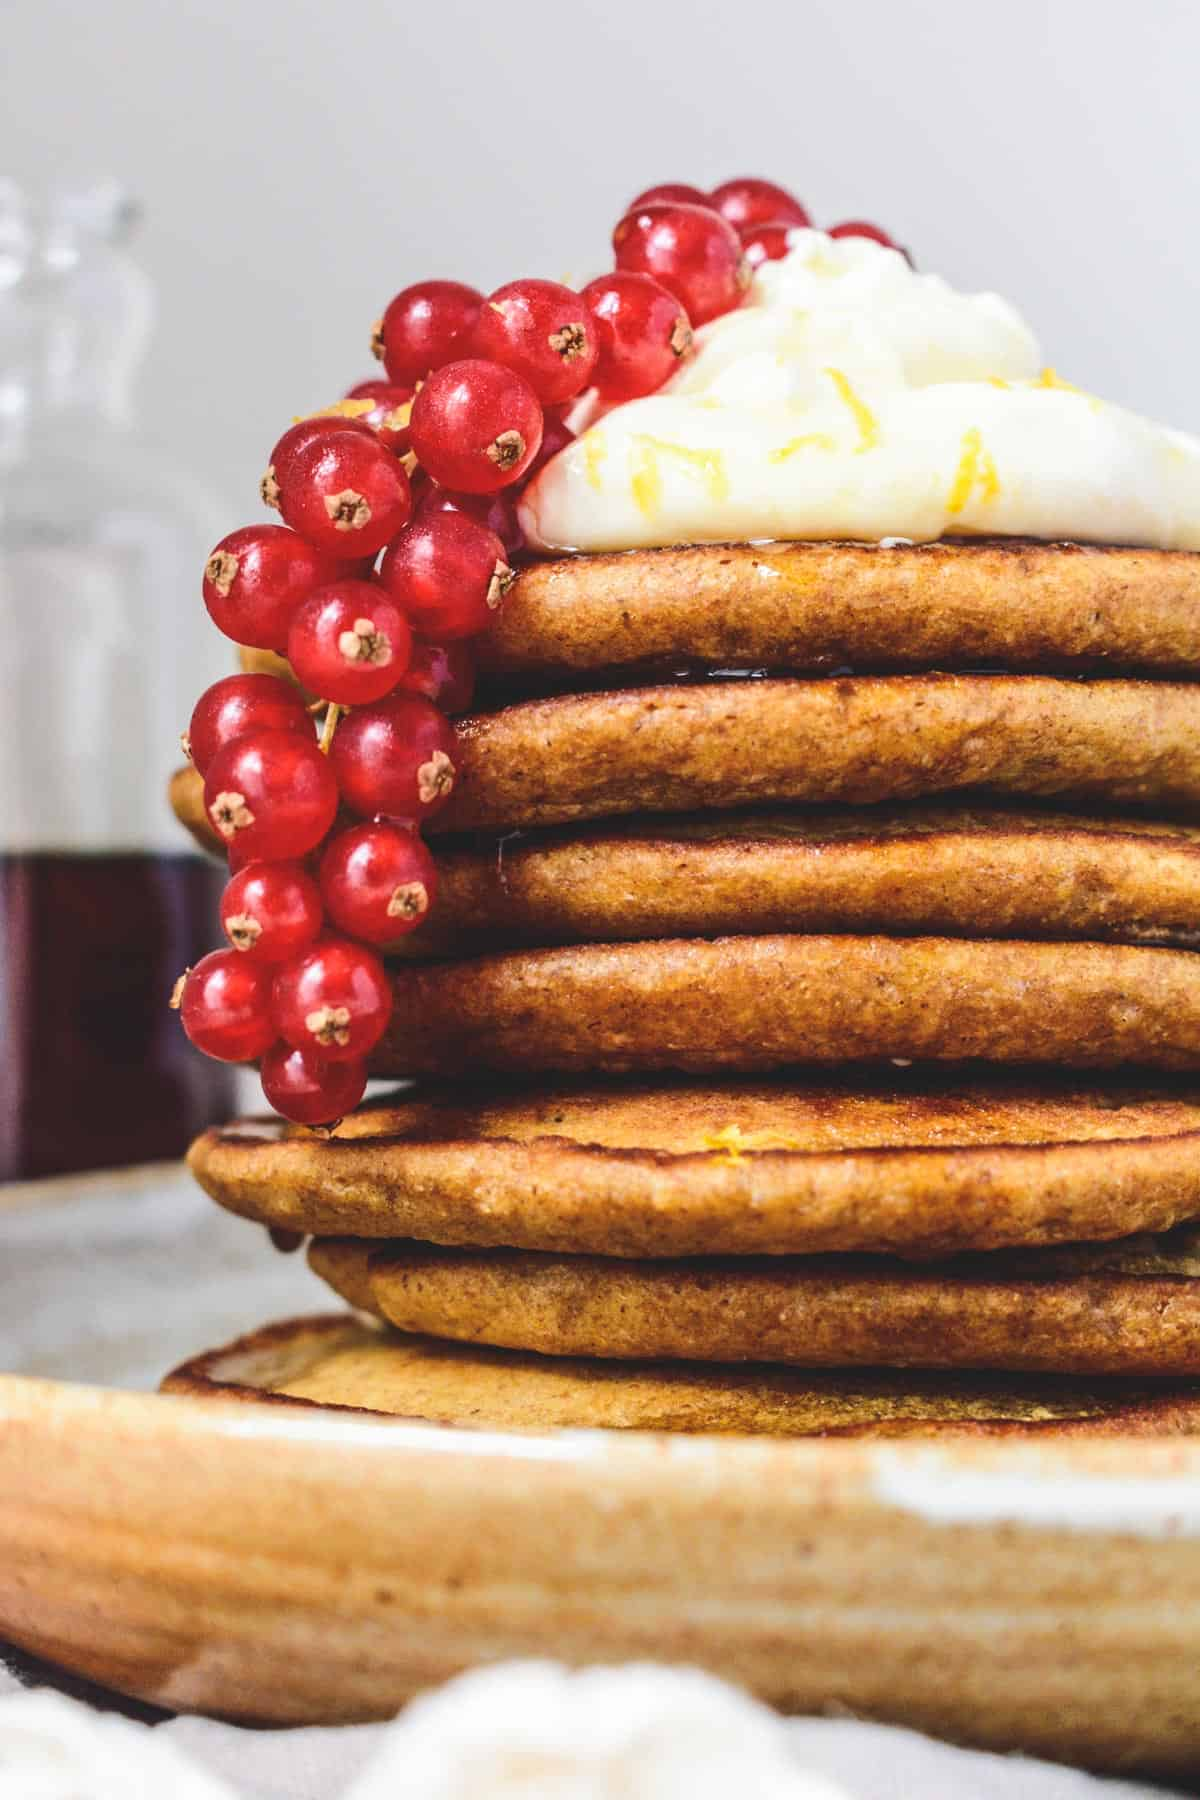 Stack of wholemeal ginger pancakes topped with lemon cream and redcurrants